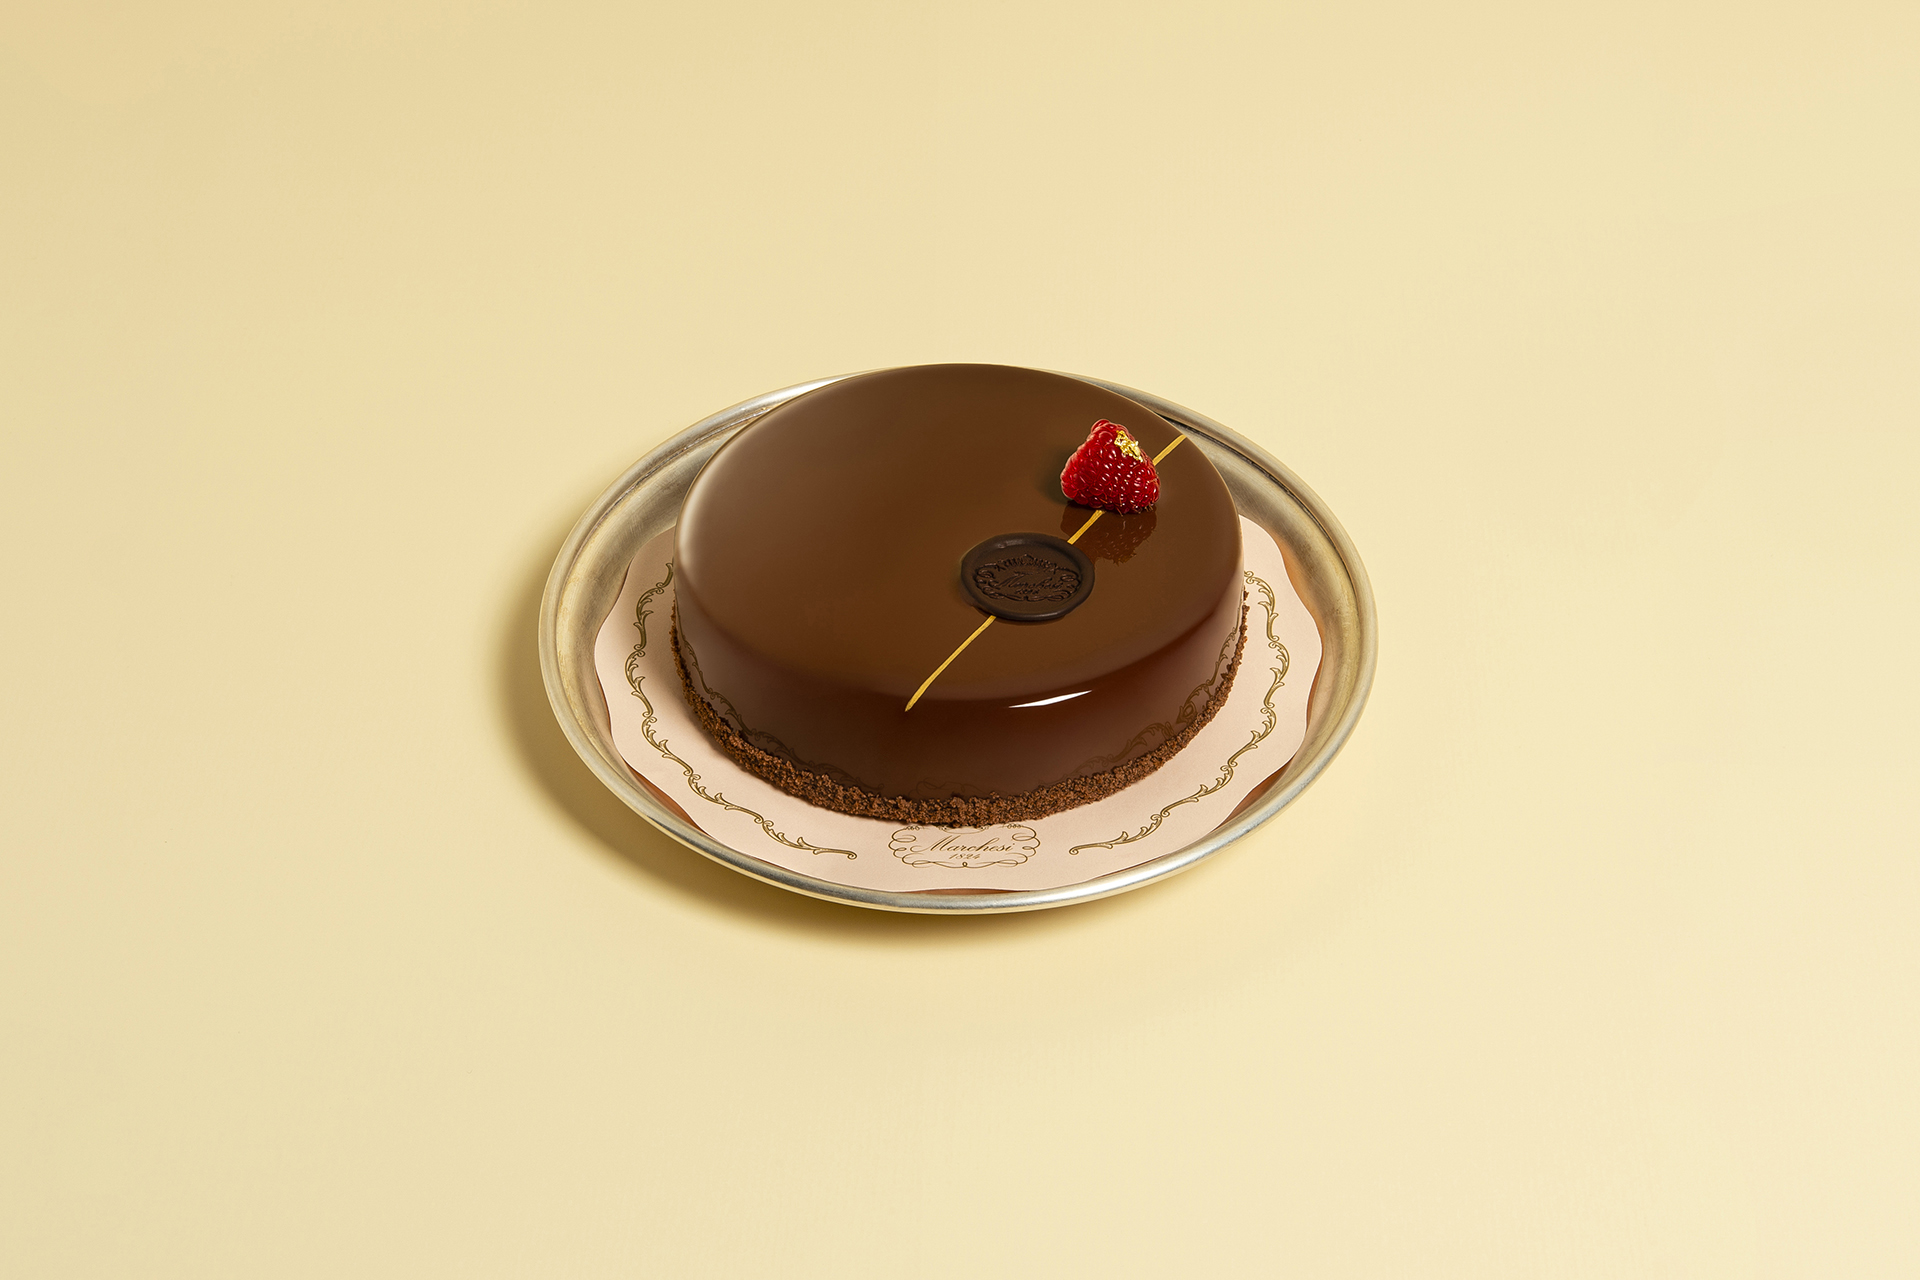 The chocolate cake with a rich and decidedly royal heritage